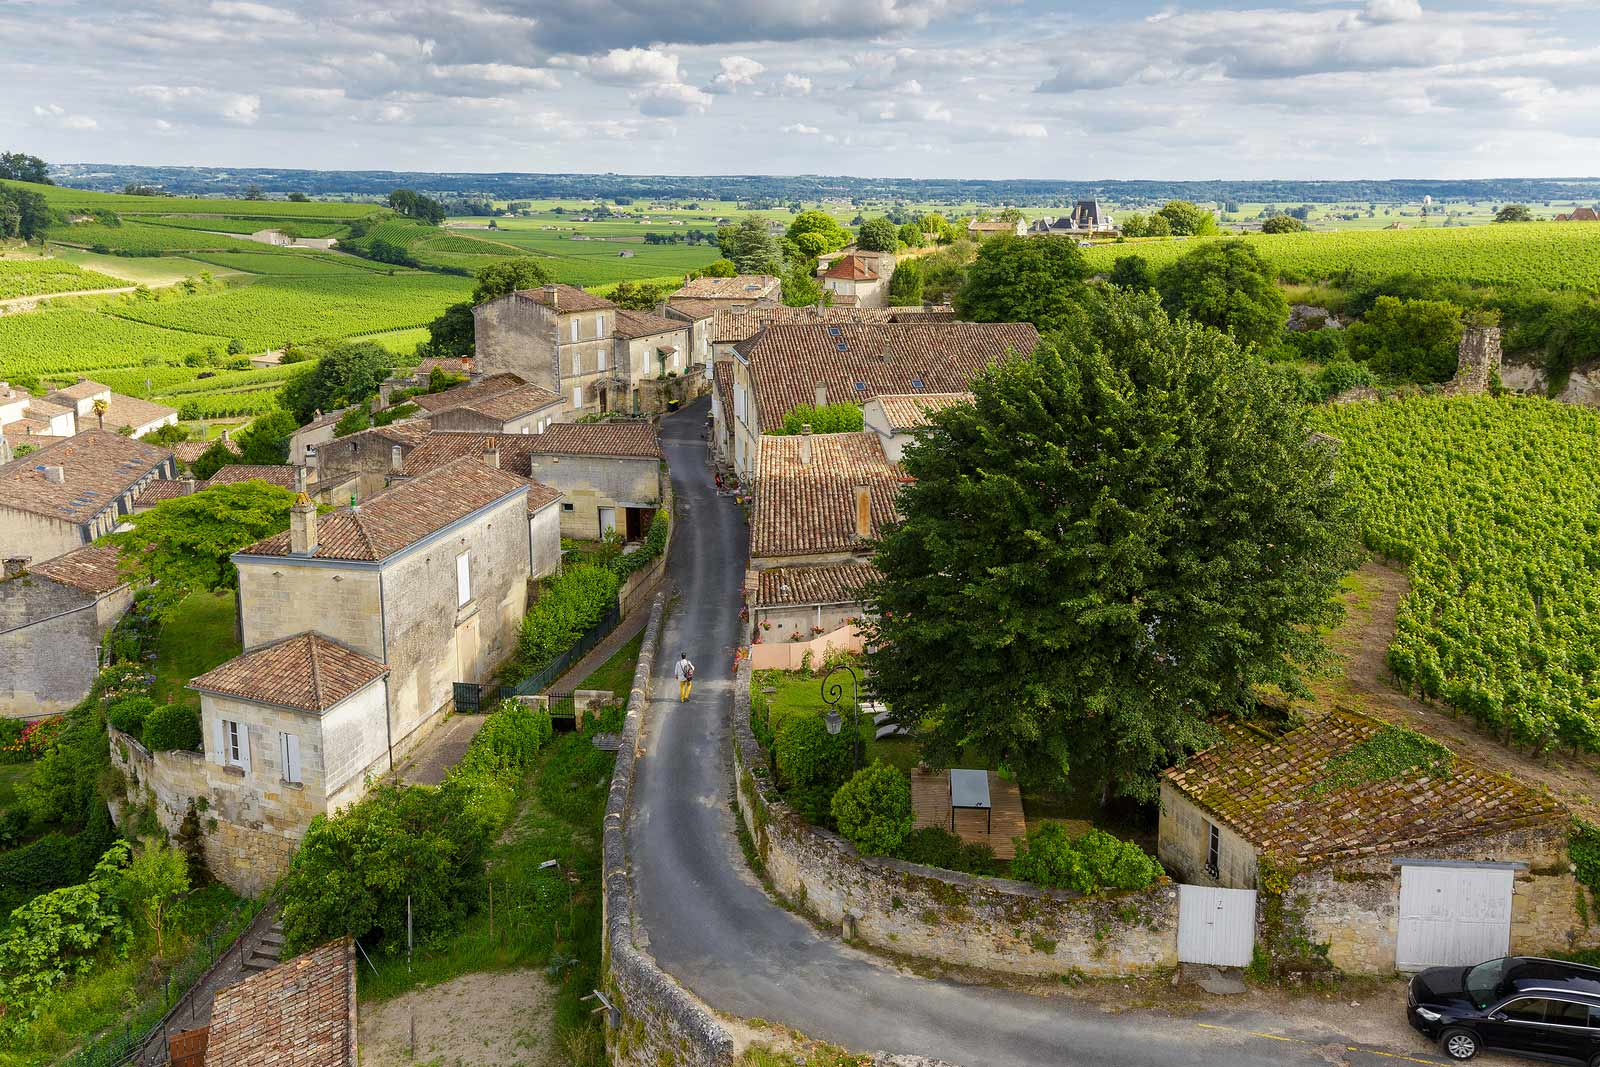 The countryside surrounding Saint-Émilion